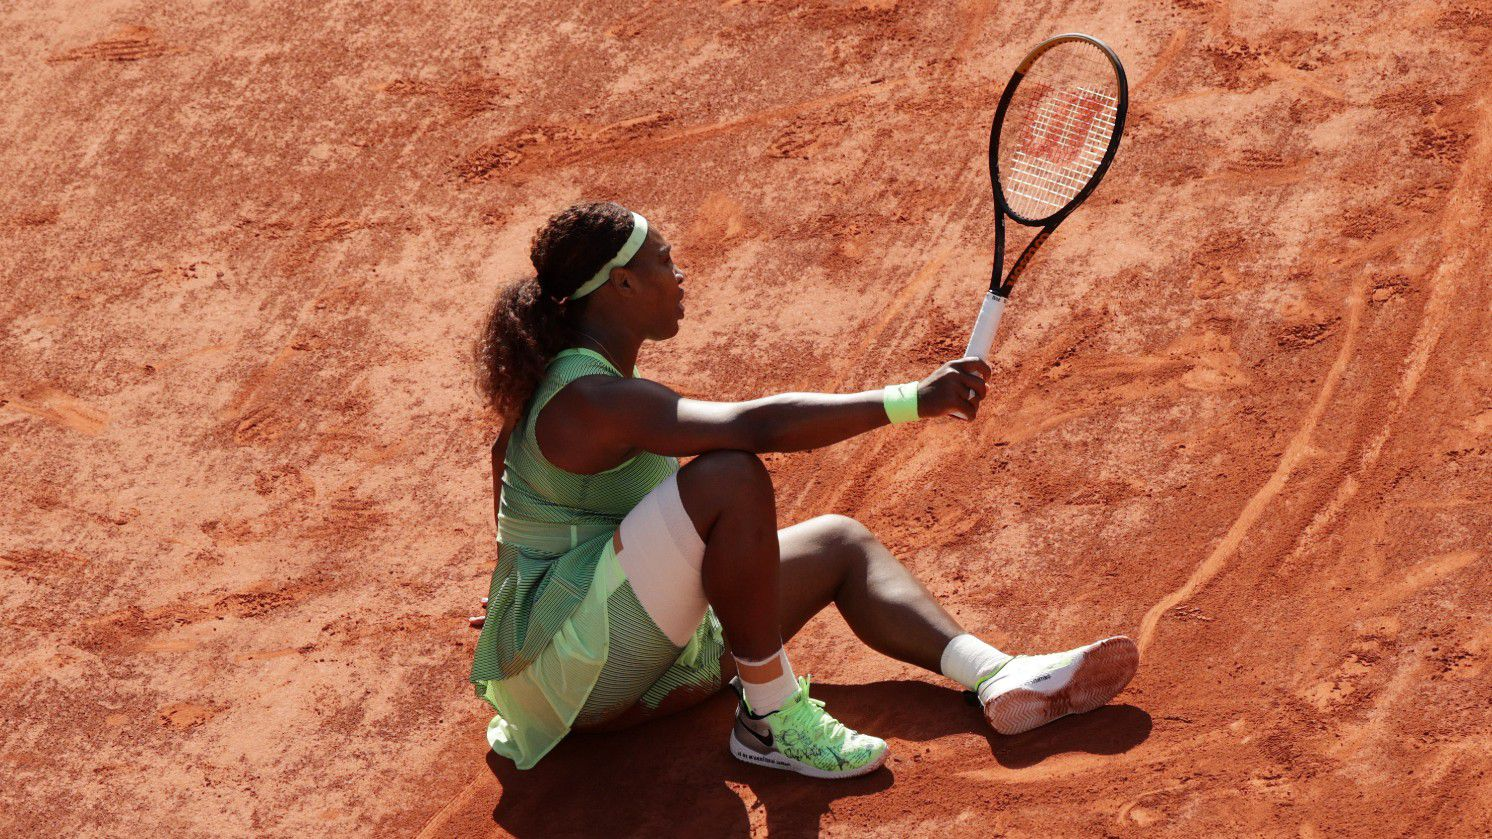 Serena Williams crashes out in last 16 of Roland Garros